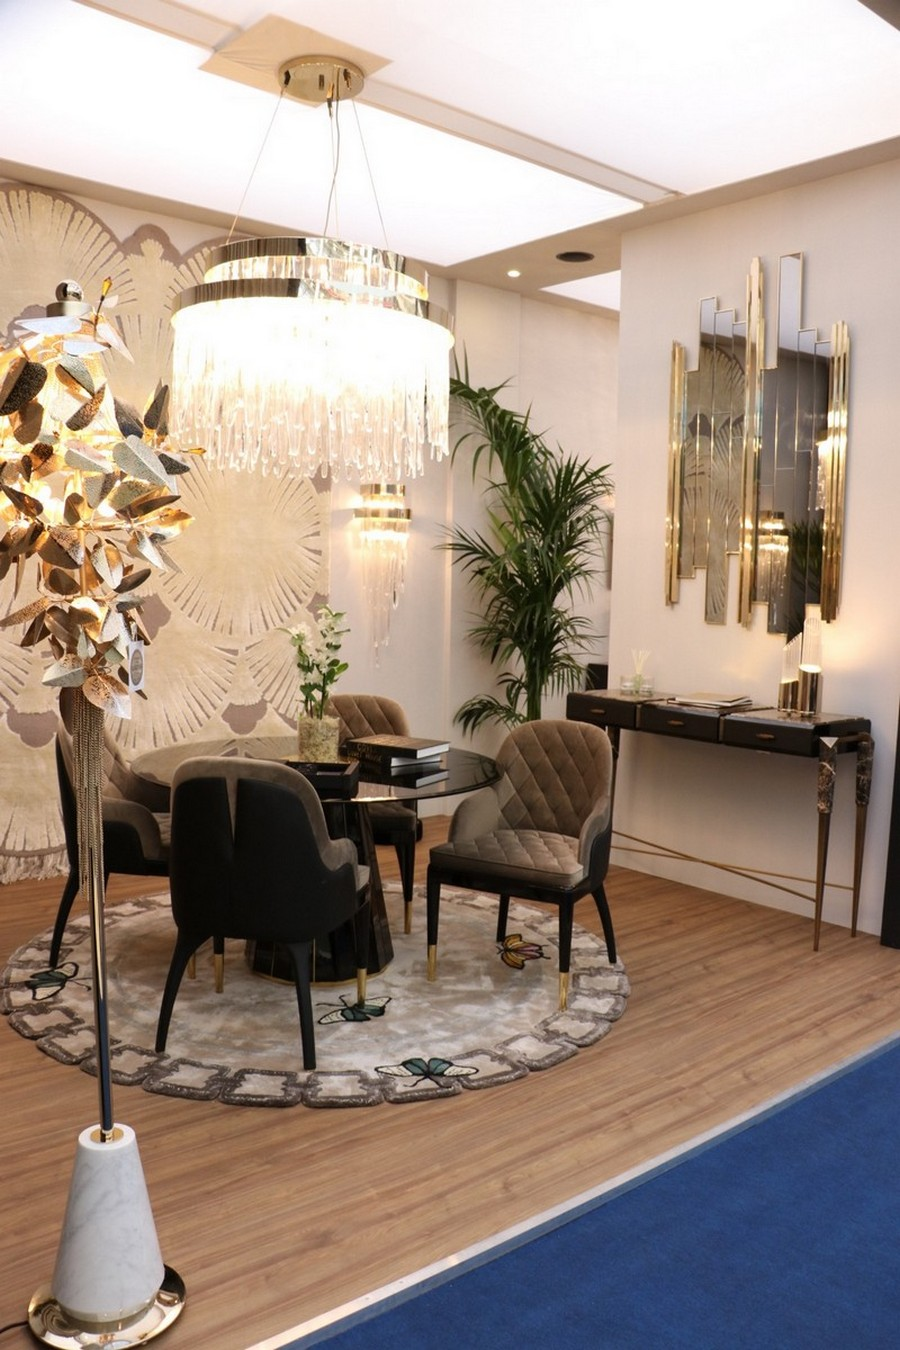 Have a look at the best of Decorex 2019 so far! decorex 2019 Have a look at the best of Decorex 2019 so far! Have a look at the best of Decorex 2019 so far 7